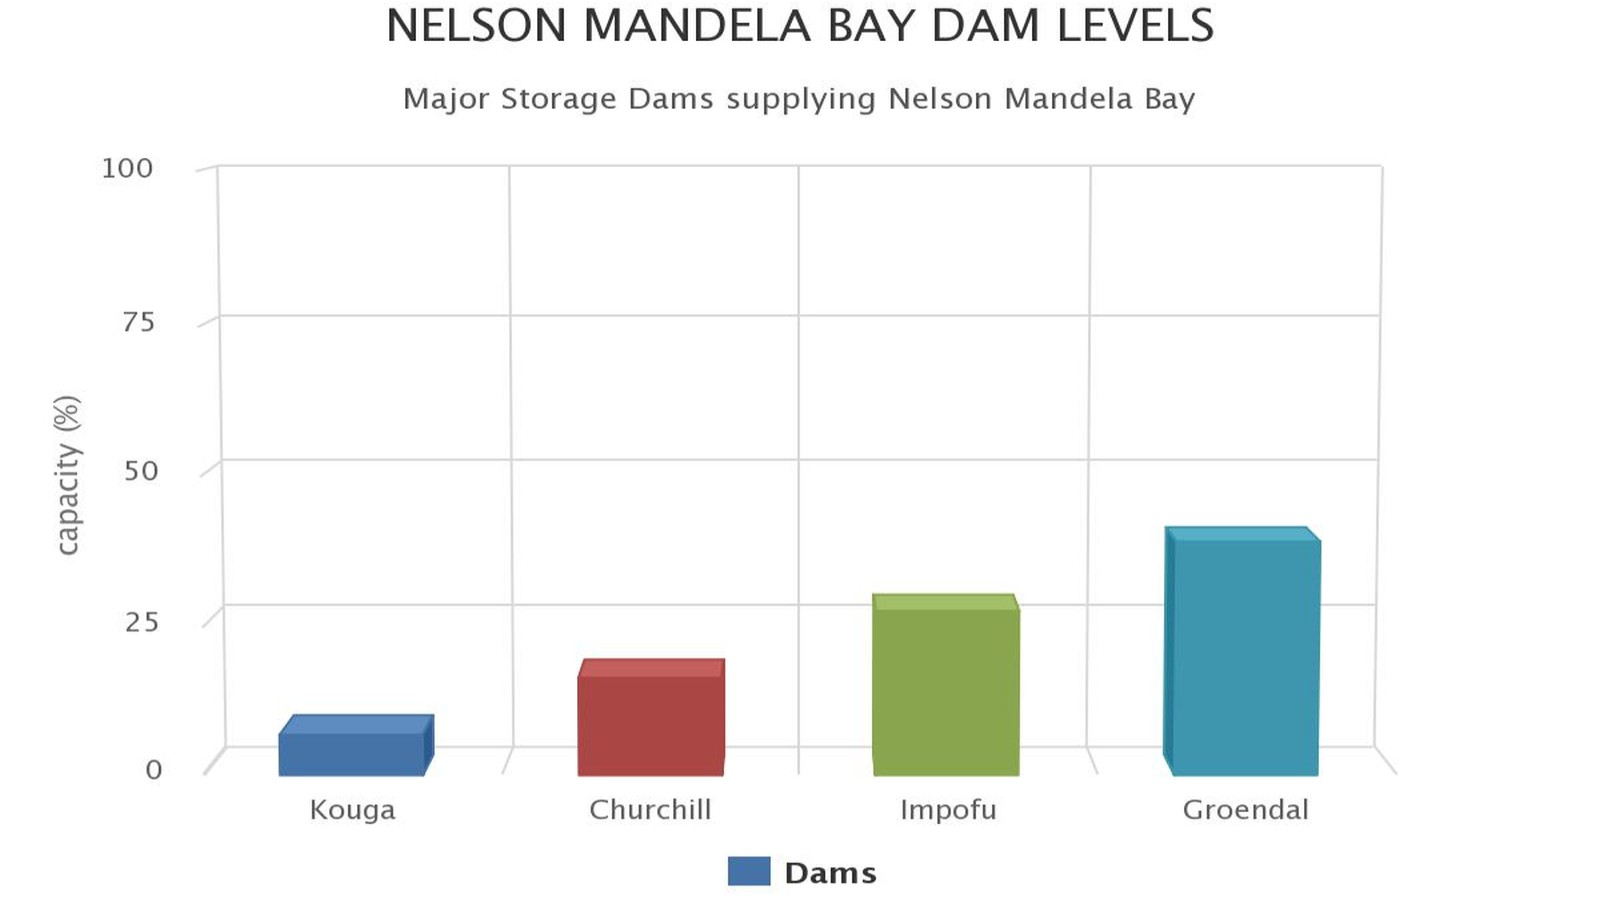 nelson mandela bay dam levels september 2018